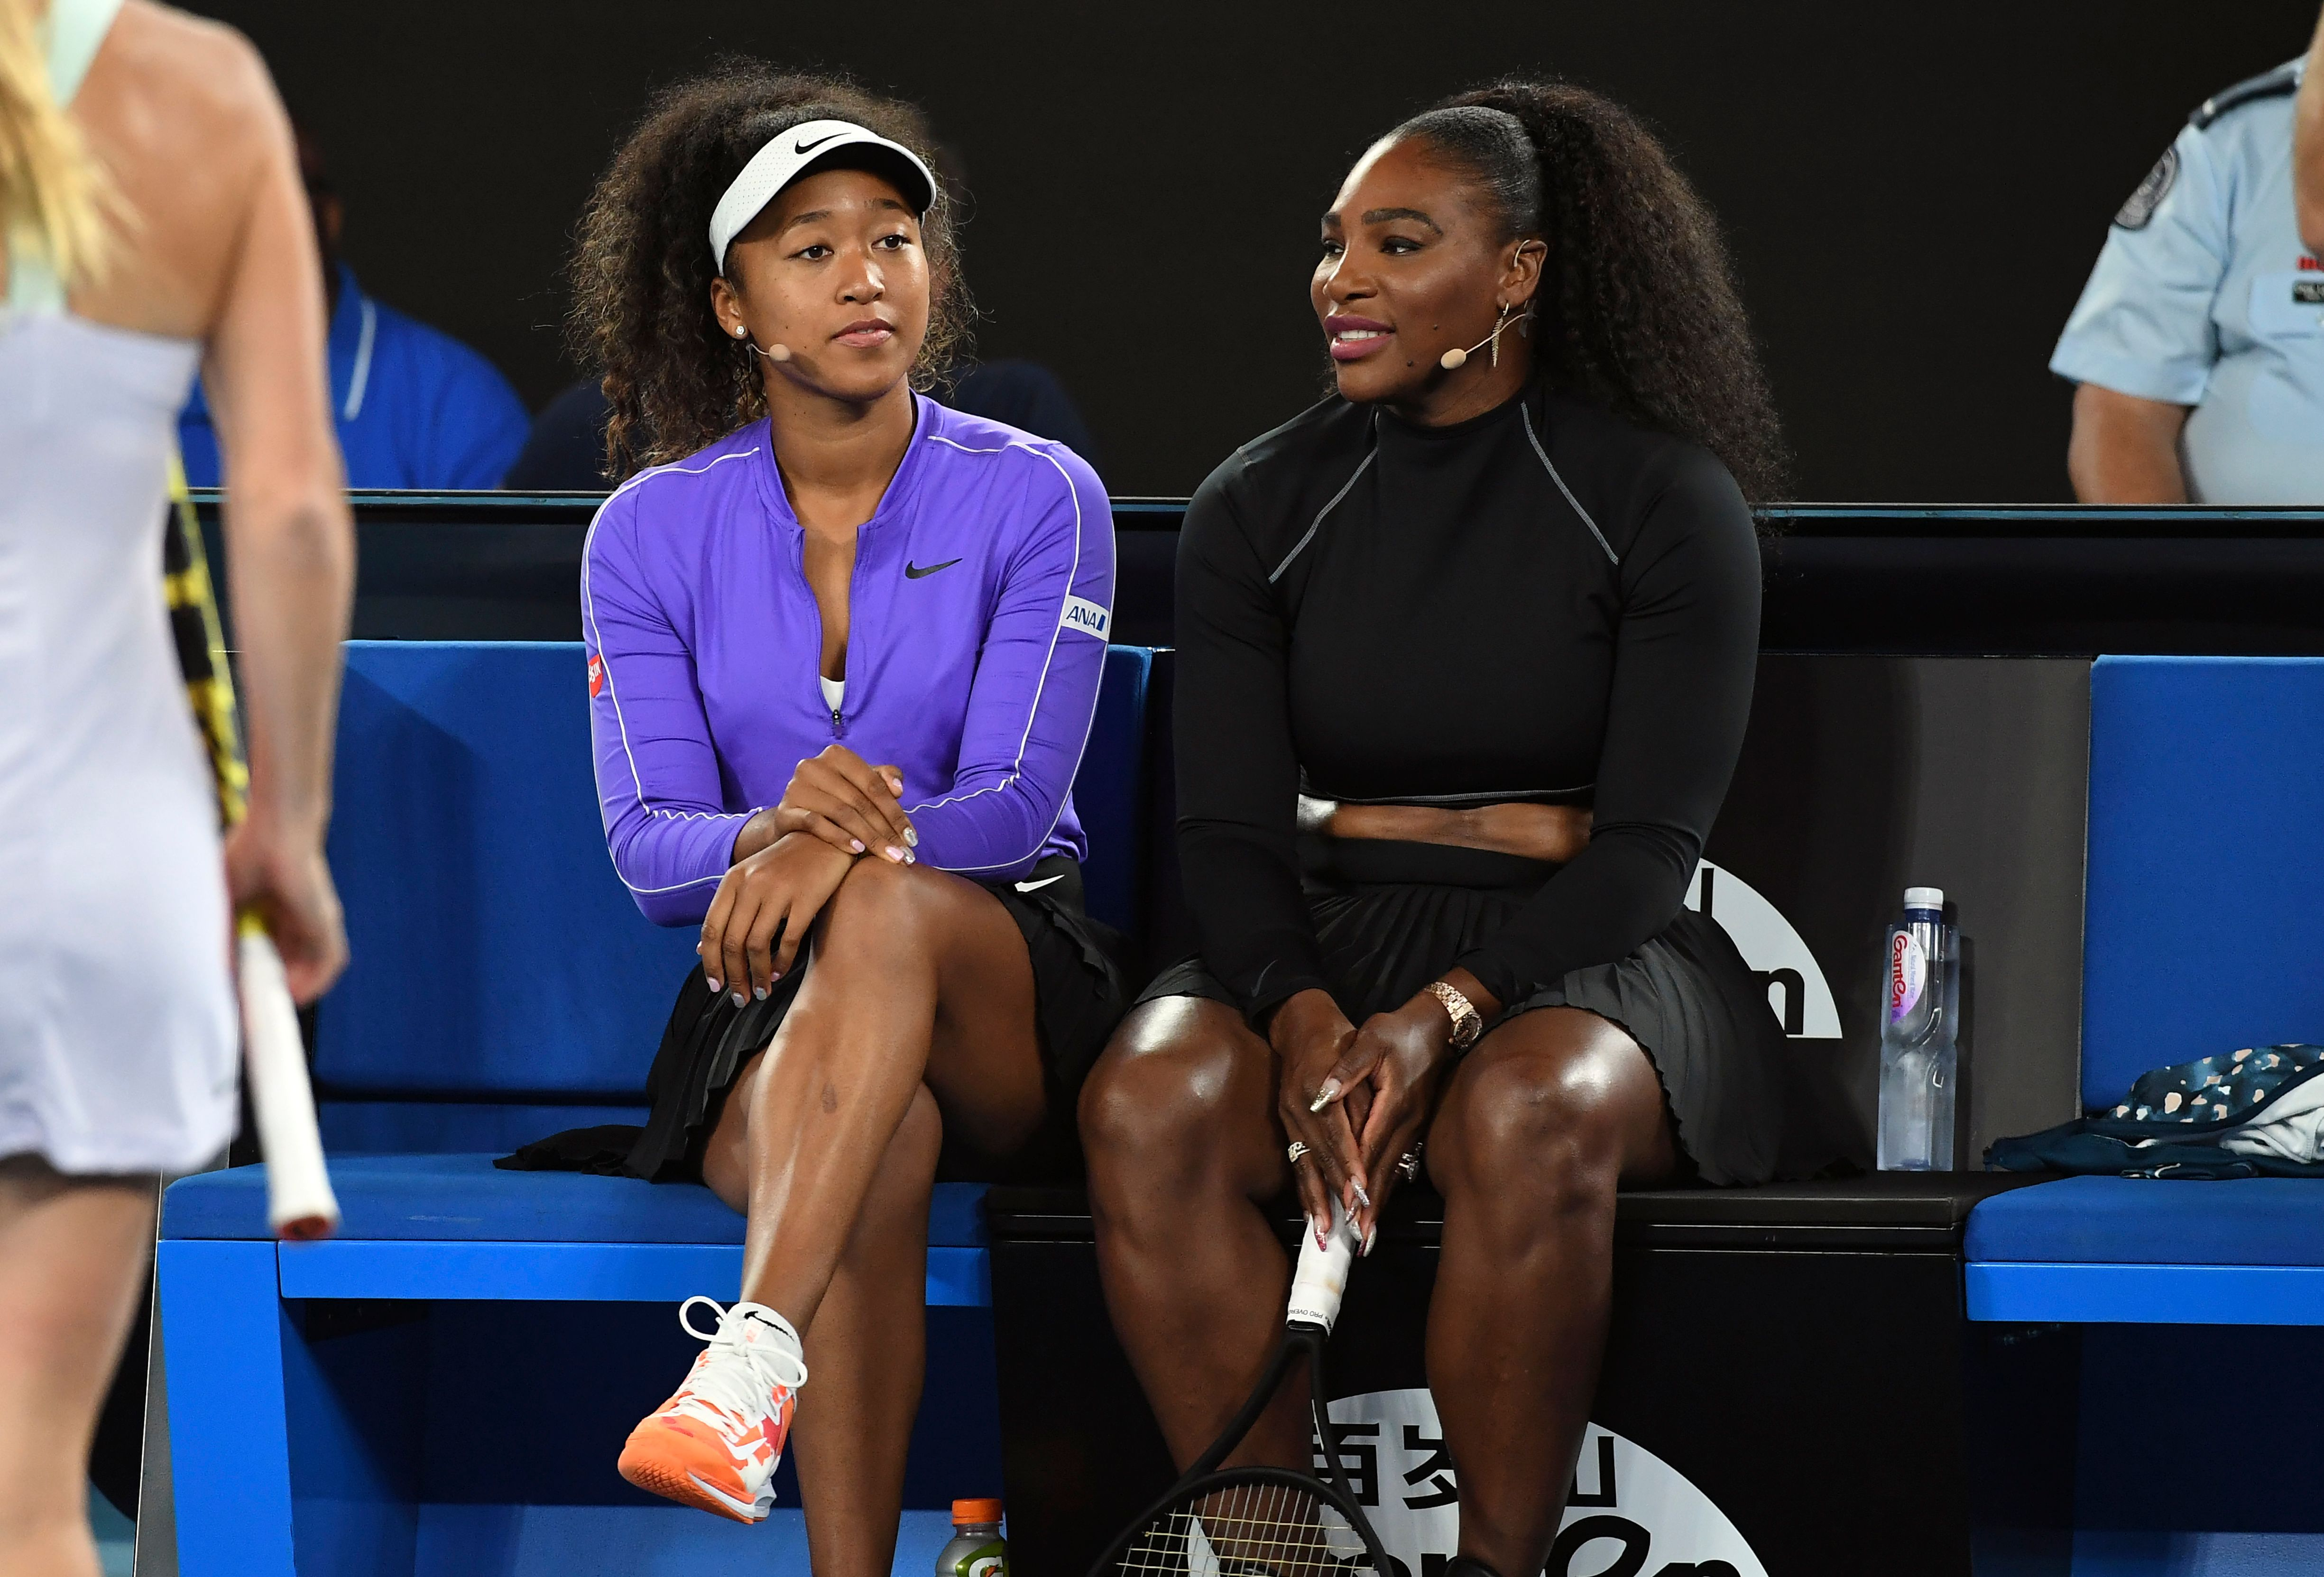 Tennis player Naomi Osaka claps back at two fans after they criticize her for calling Serena Williams her mom in a new Instagram post.